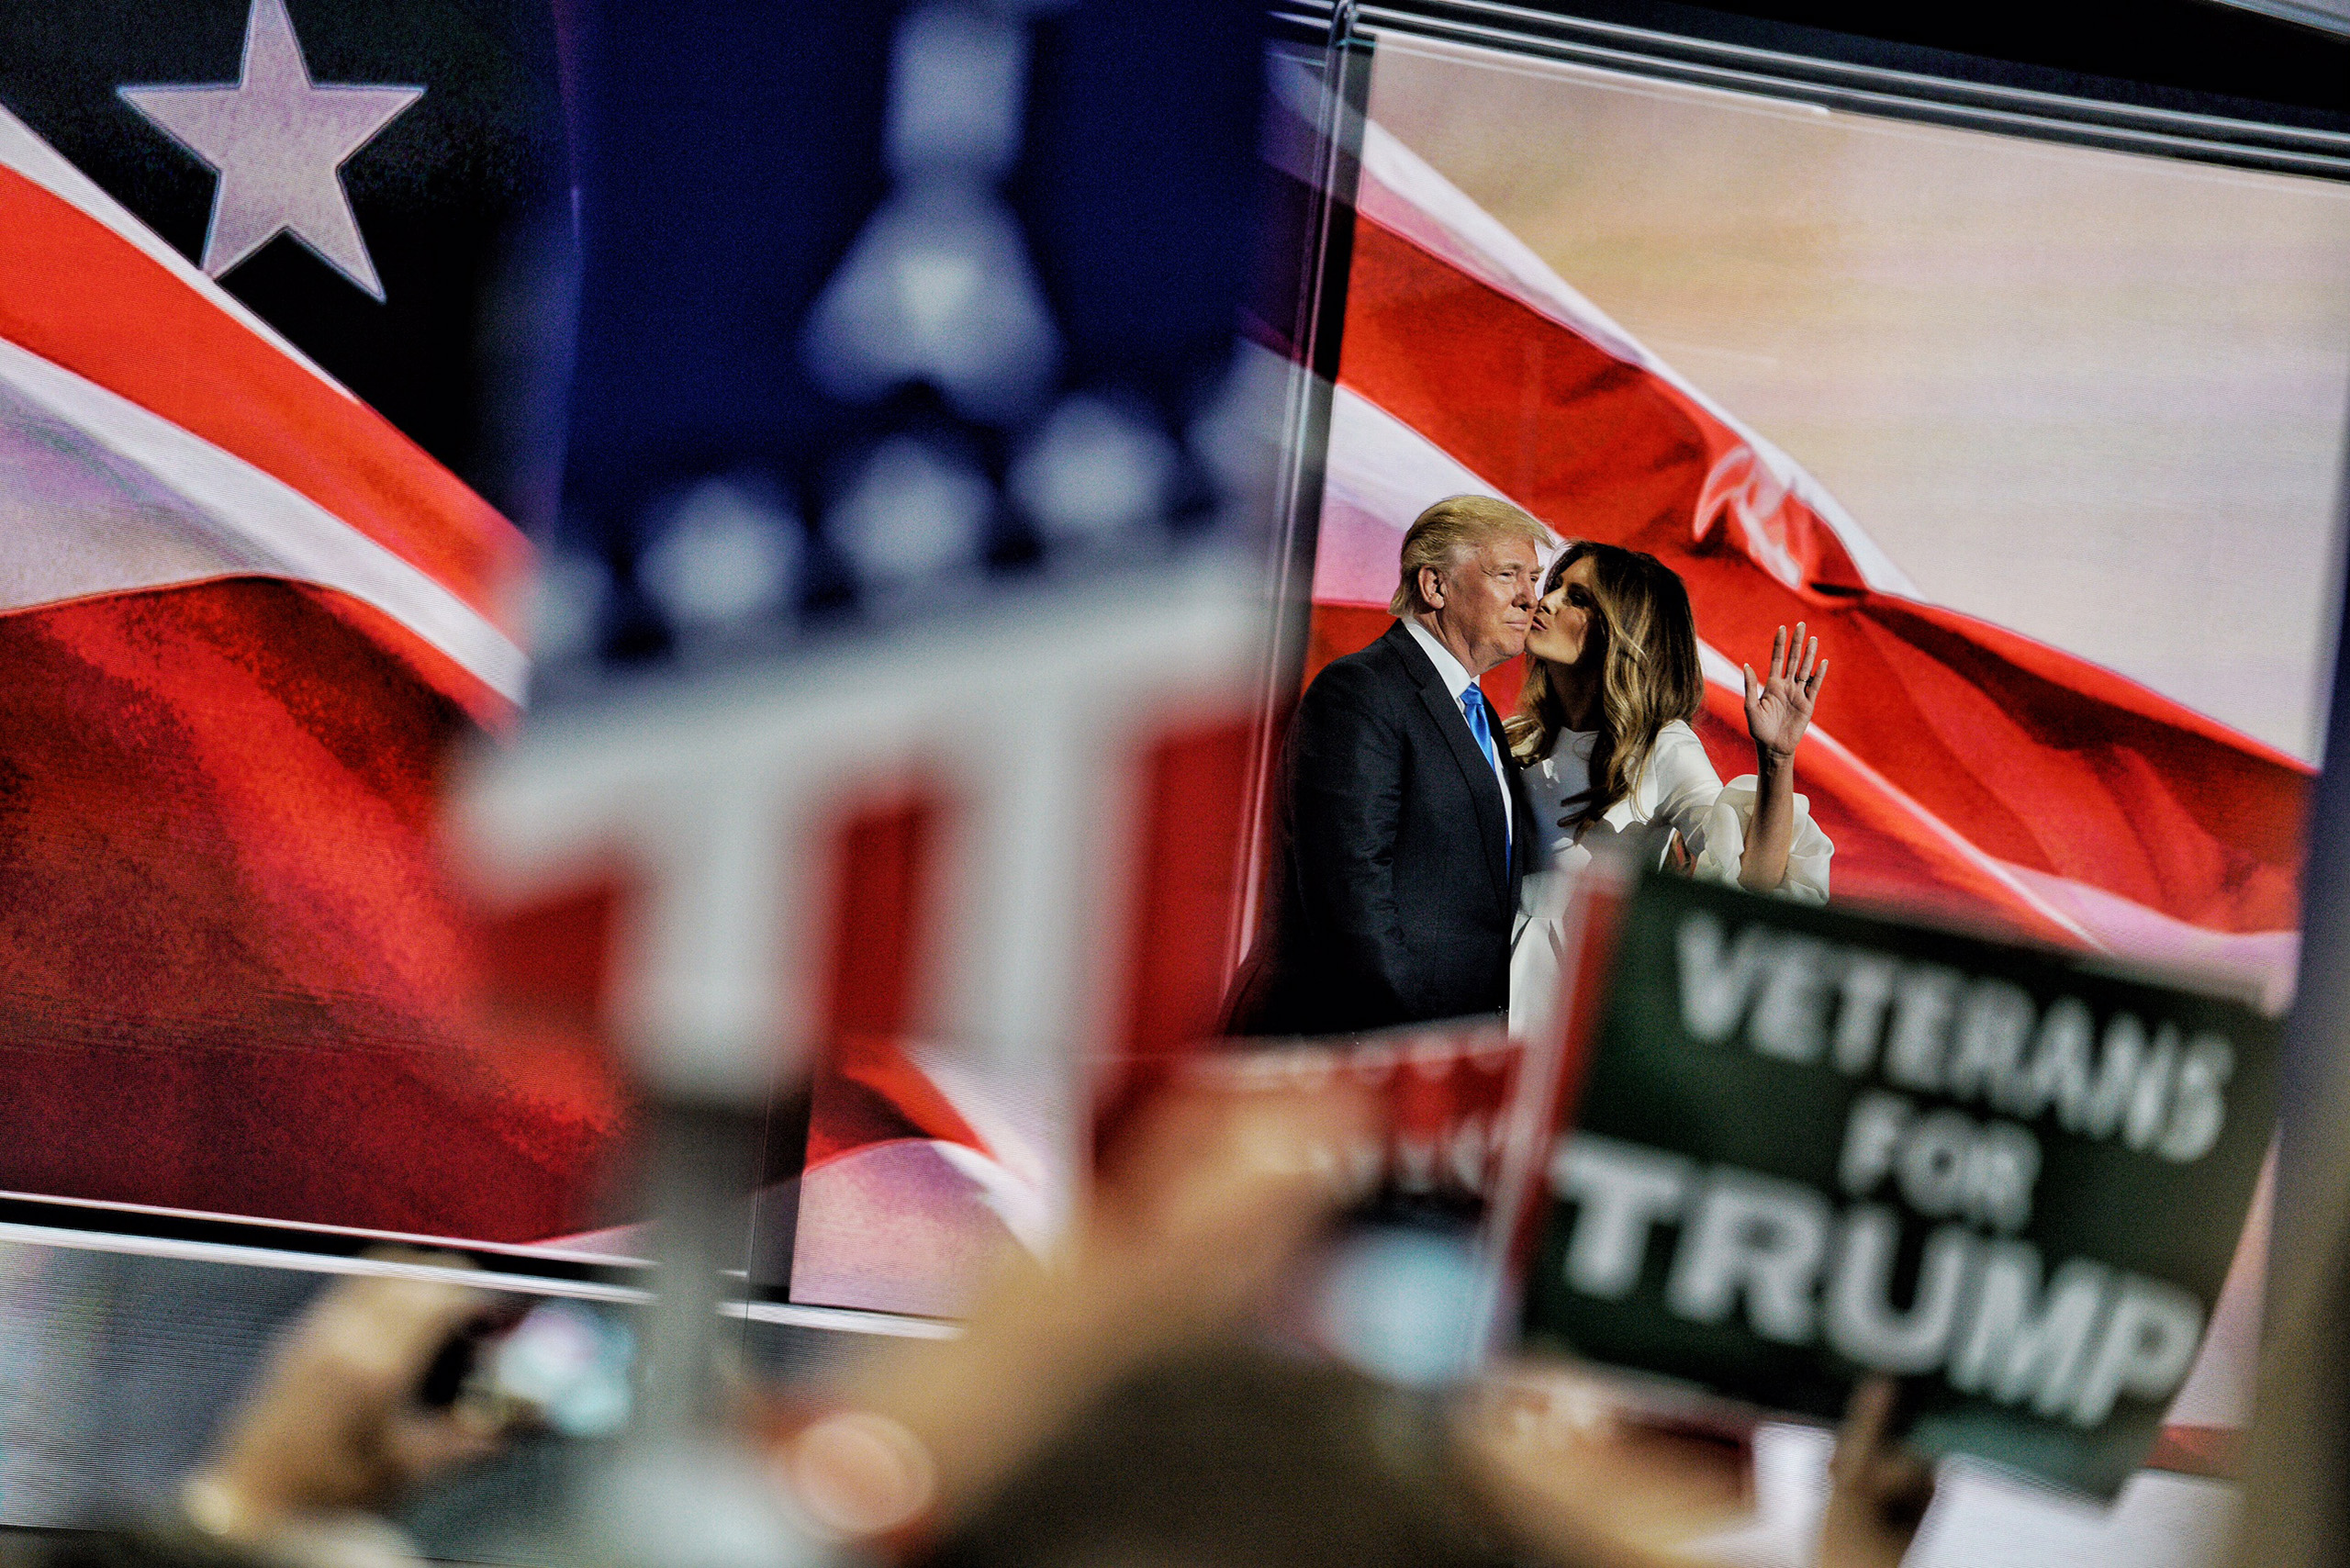 Donald Trump, left, kisses his wife Melania during the Republican National Convention in Cleveland, Ohio, on Monday, July 18, 2016.